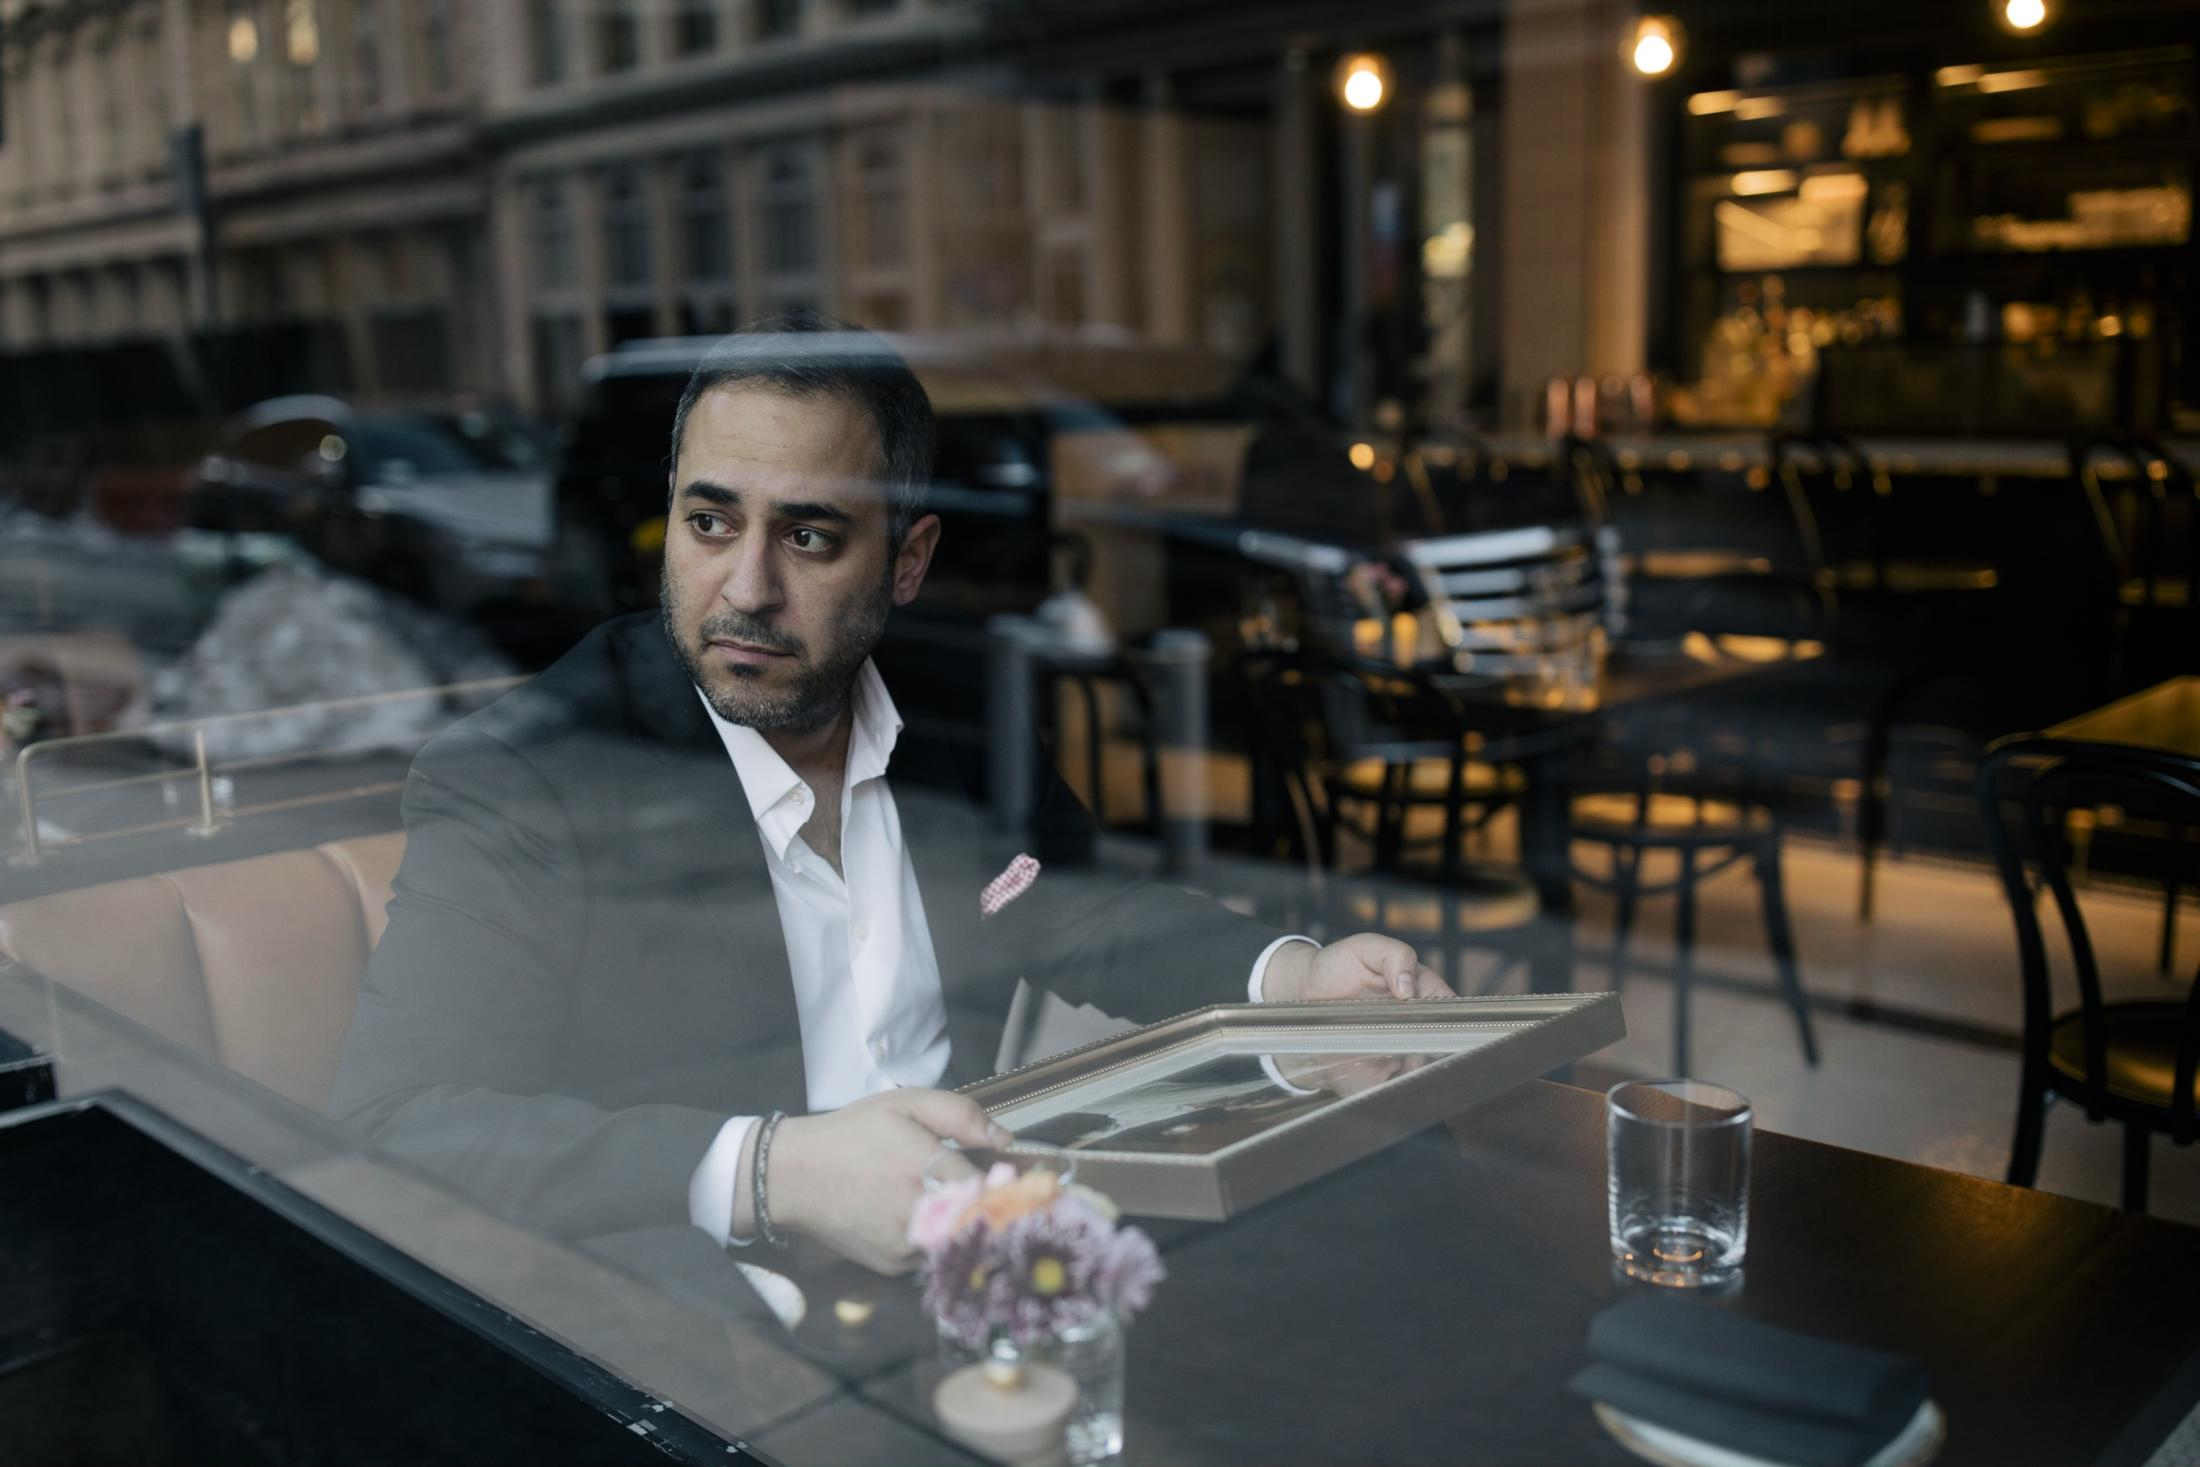 New York City, New York — February 24, 2021: Andreas Koutsoudakis Jr., 36, a restaurant lawyer at Koutsoudakis & Lakovou Law Group and Owner of TriBeCa's Kitchen, sits in a booth with a portrait of his father, Andreas Koutsoudakis Sr. who died of Covid-19 in March, before the evening dinner service in late February. As the impact of the COVID-19 pandemic rolls into February, many residents of New York City continue the exhausting effort to navigate the many complexities the pandemic has brought to their lives and businesses. CREDIT: José A. Alvarado Jr. for The Wall Street Journal